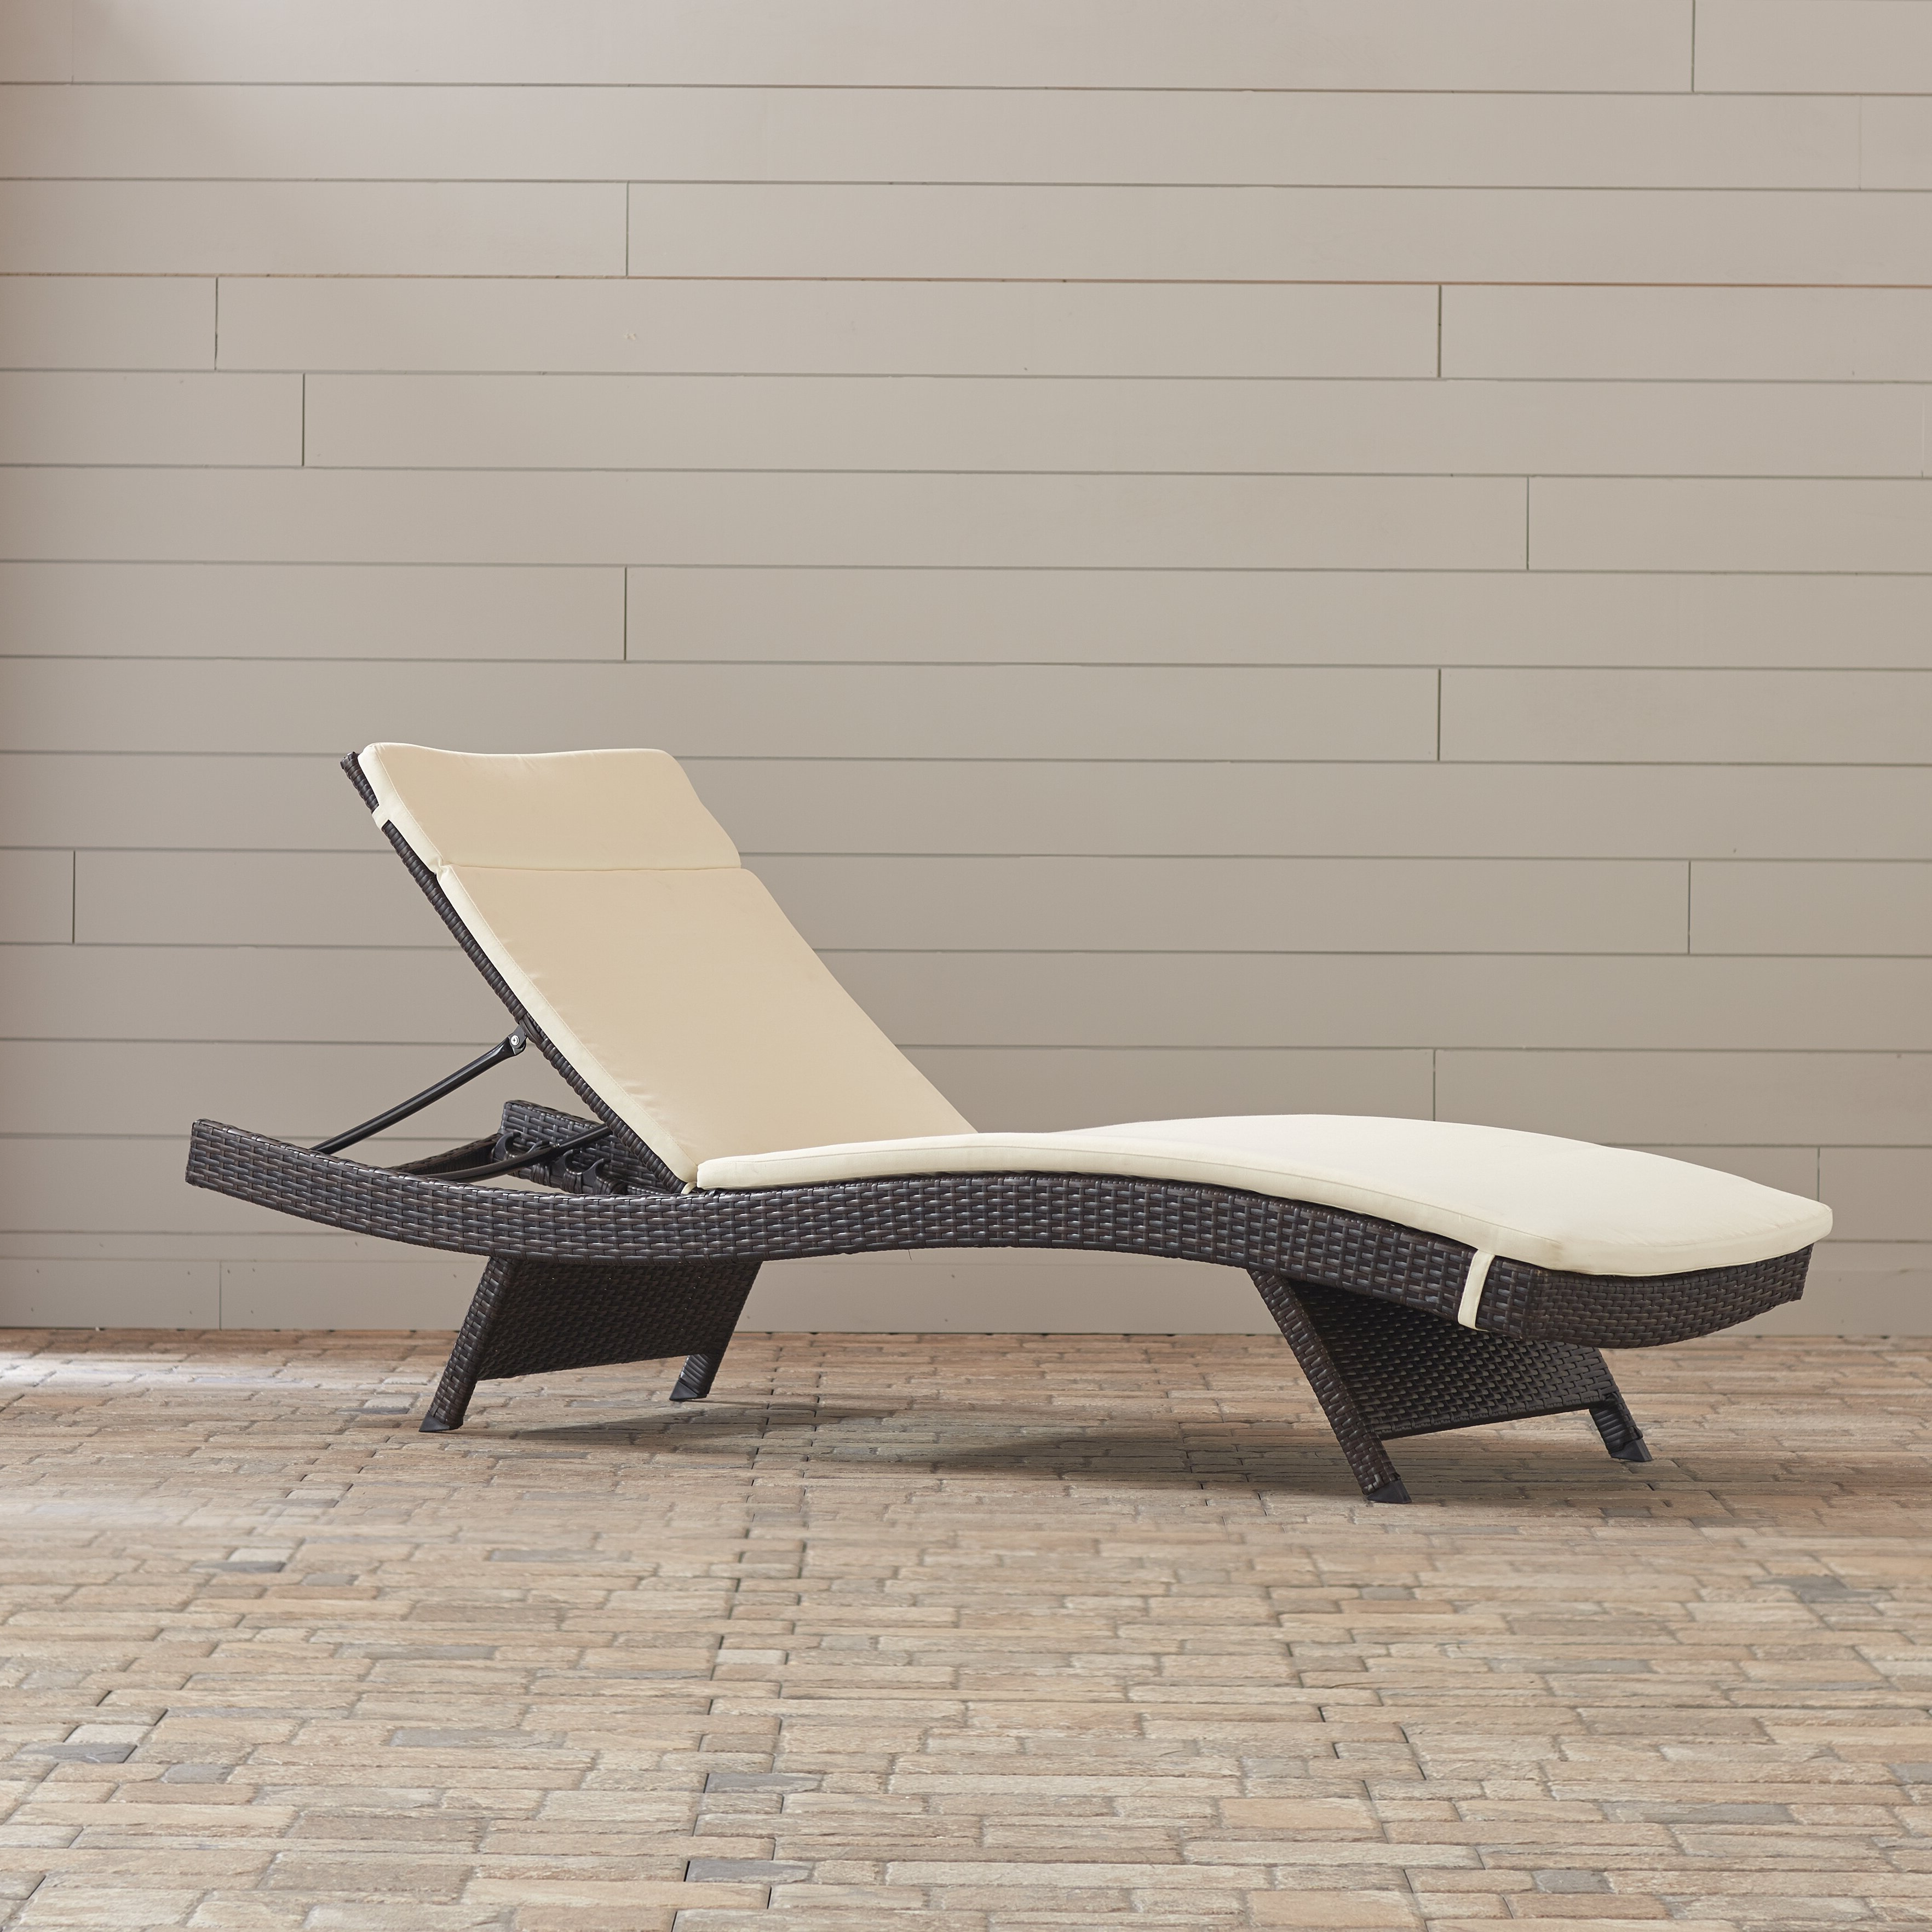 Garry Wicker Reclining Chaise Lounge With Cushion Within 2020 Outdoor Wicker Adjustable Chaise Lounges With Cushions (View 8 of 25)